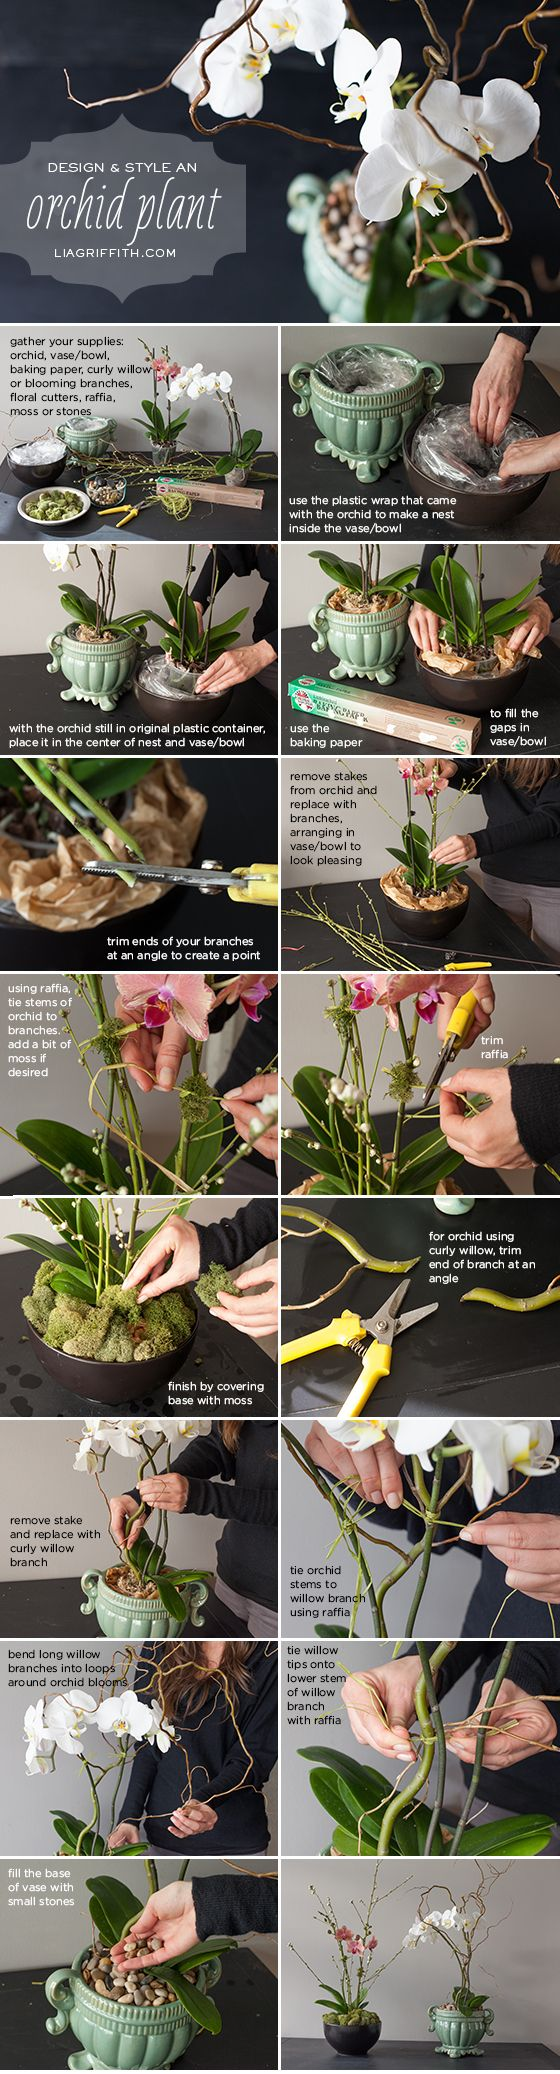 "Use this easy step-by-step tutorial to style a grocery store orchid into a floral shop design. ""Repinned by Keva xo""."